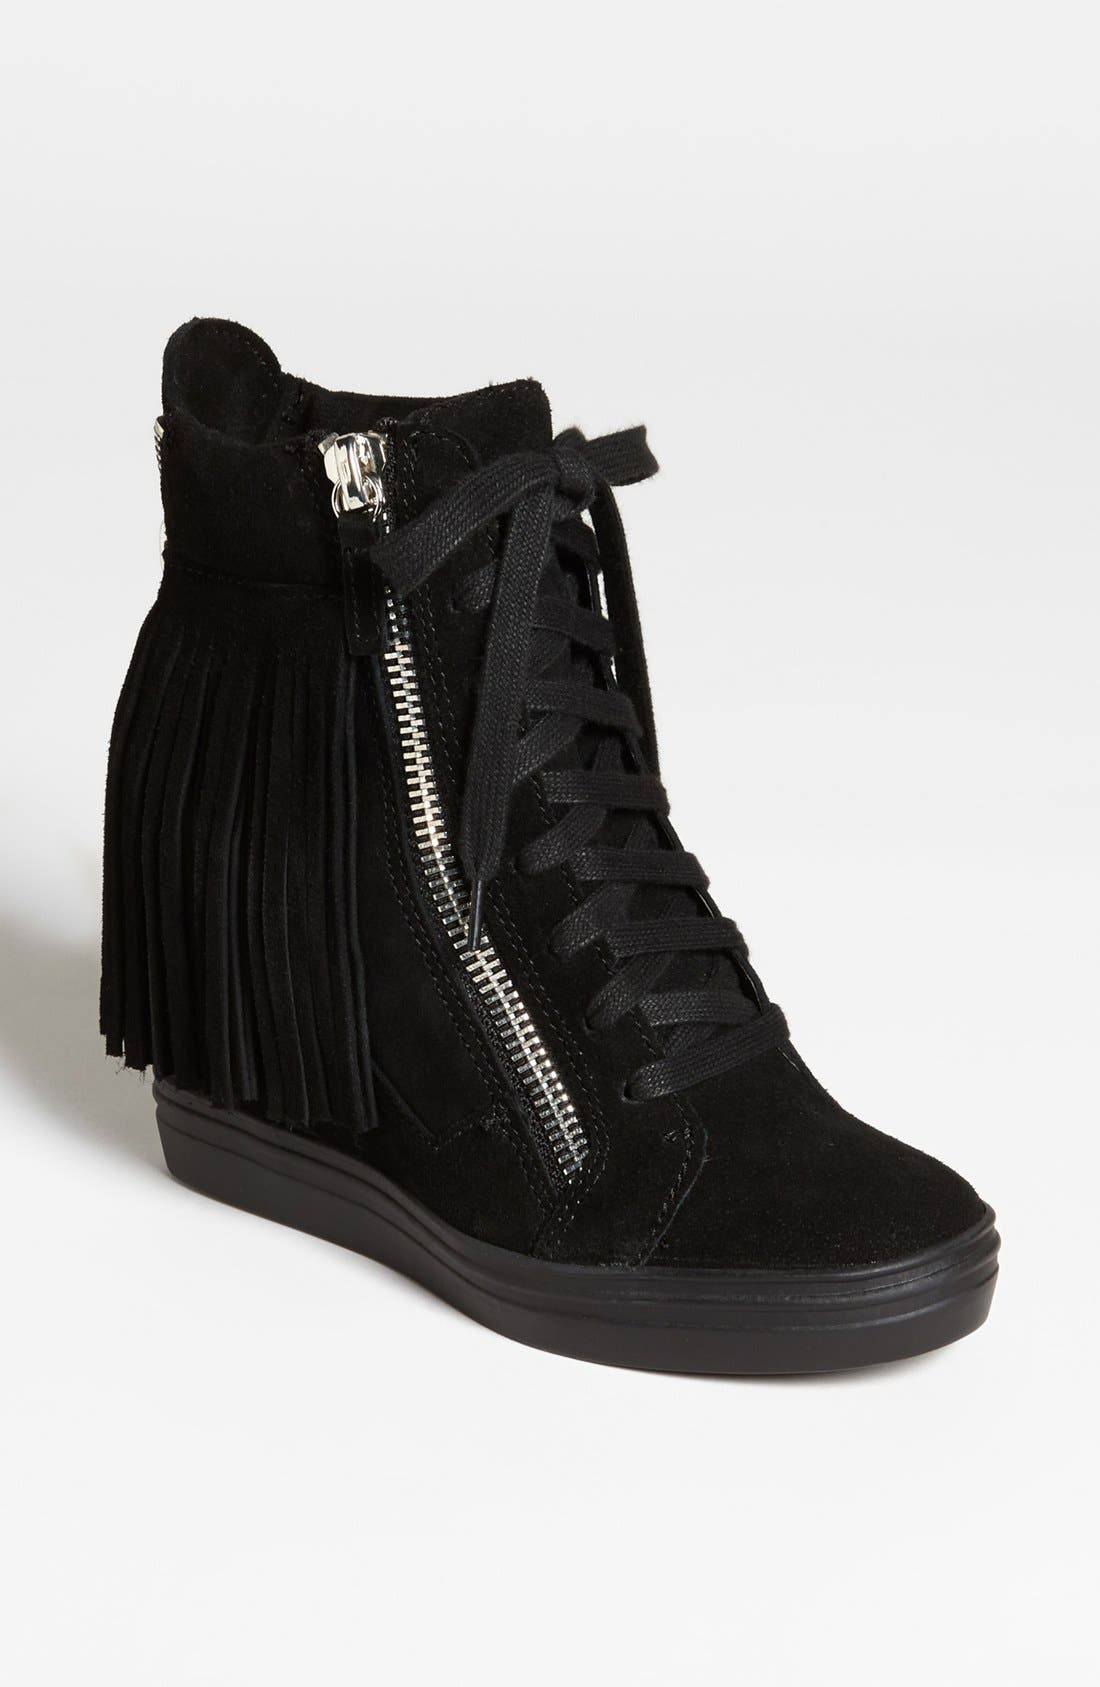 Alternate Image 1 Selected - Steve Madden 'Georga-F' Wedge Sneaker